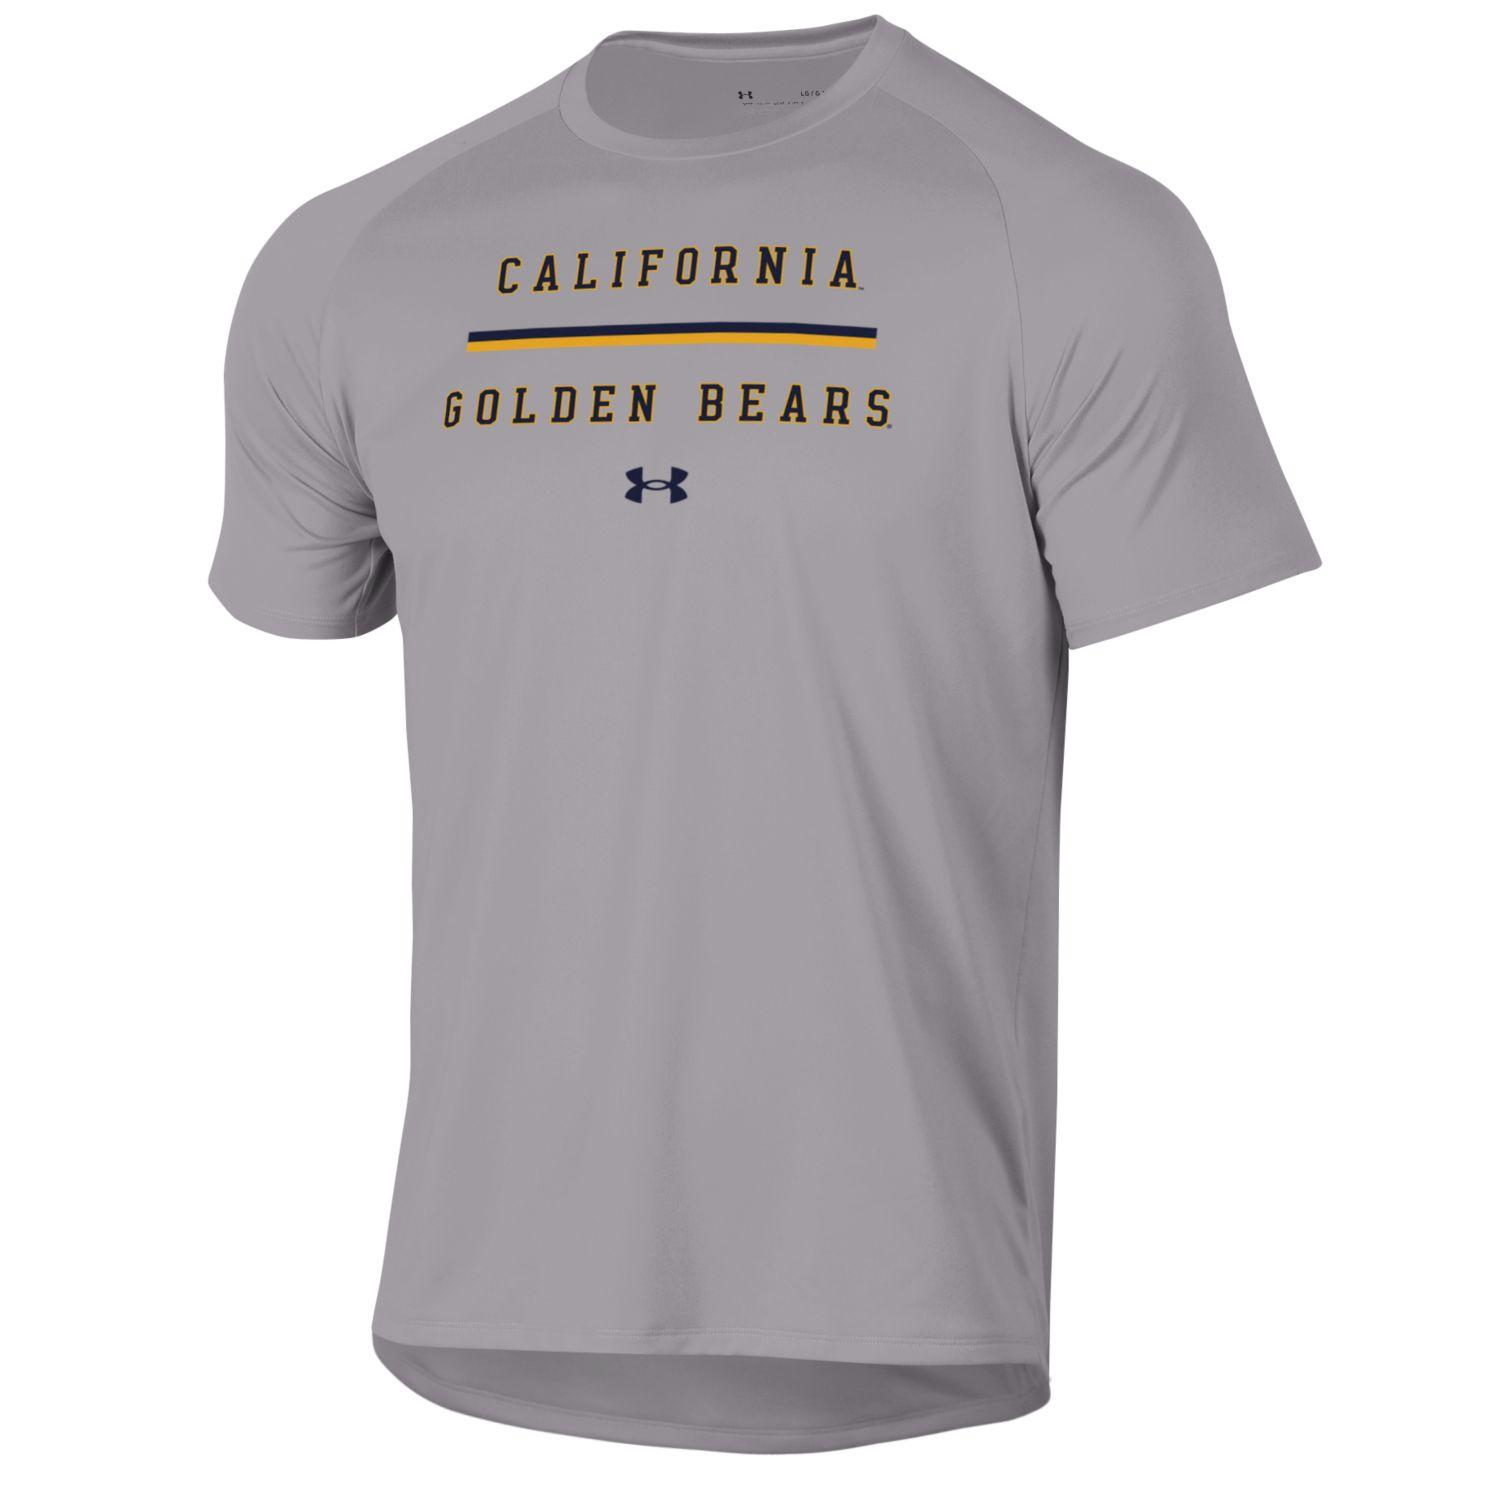 M Tech Tee 2.0 Cal Golden Bears